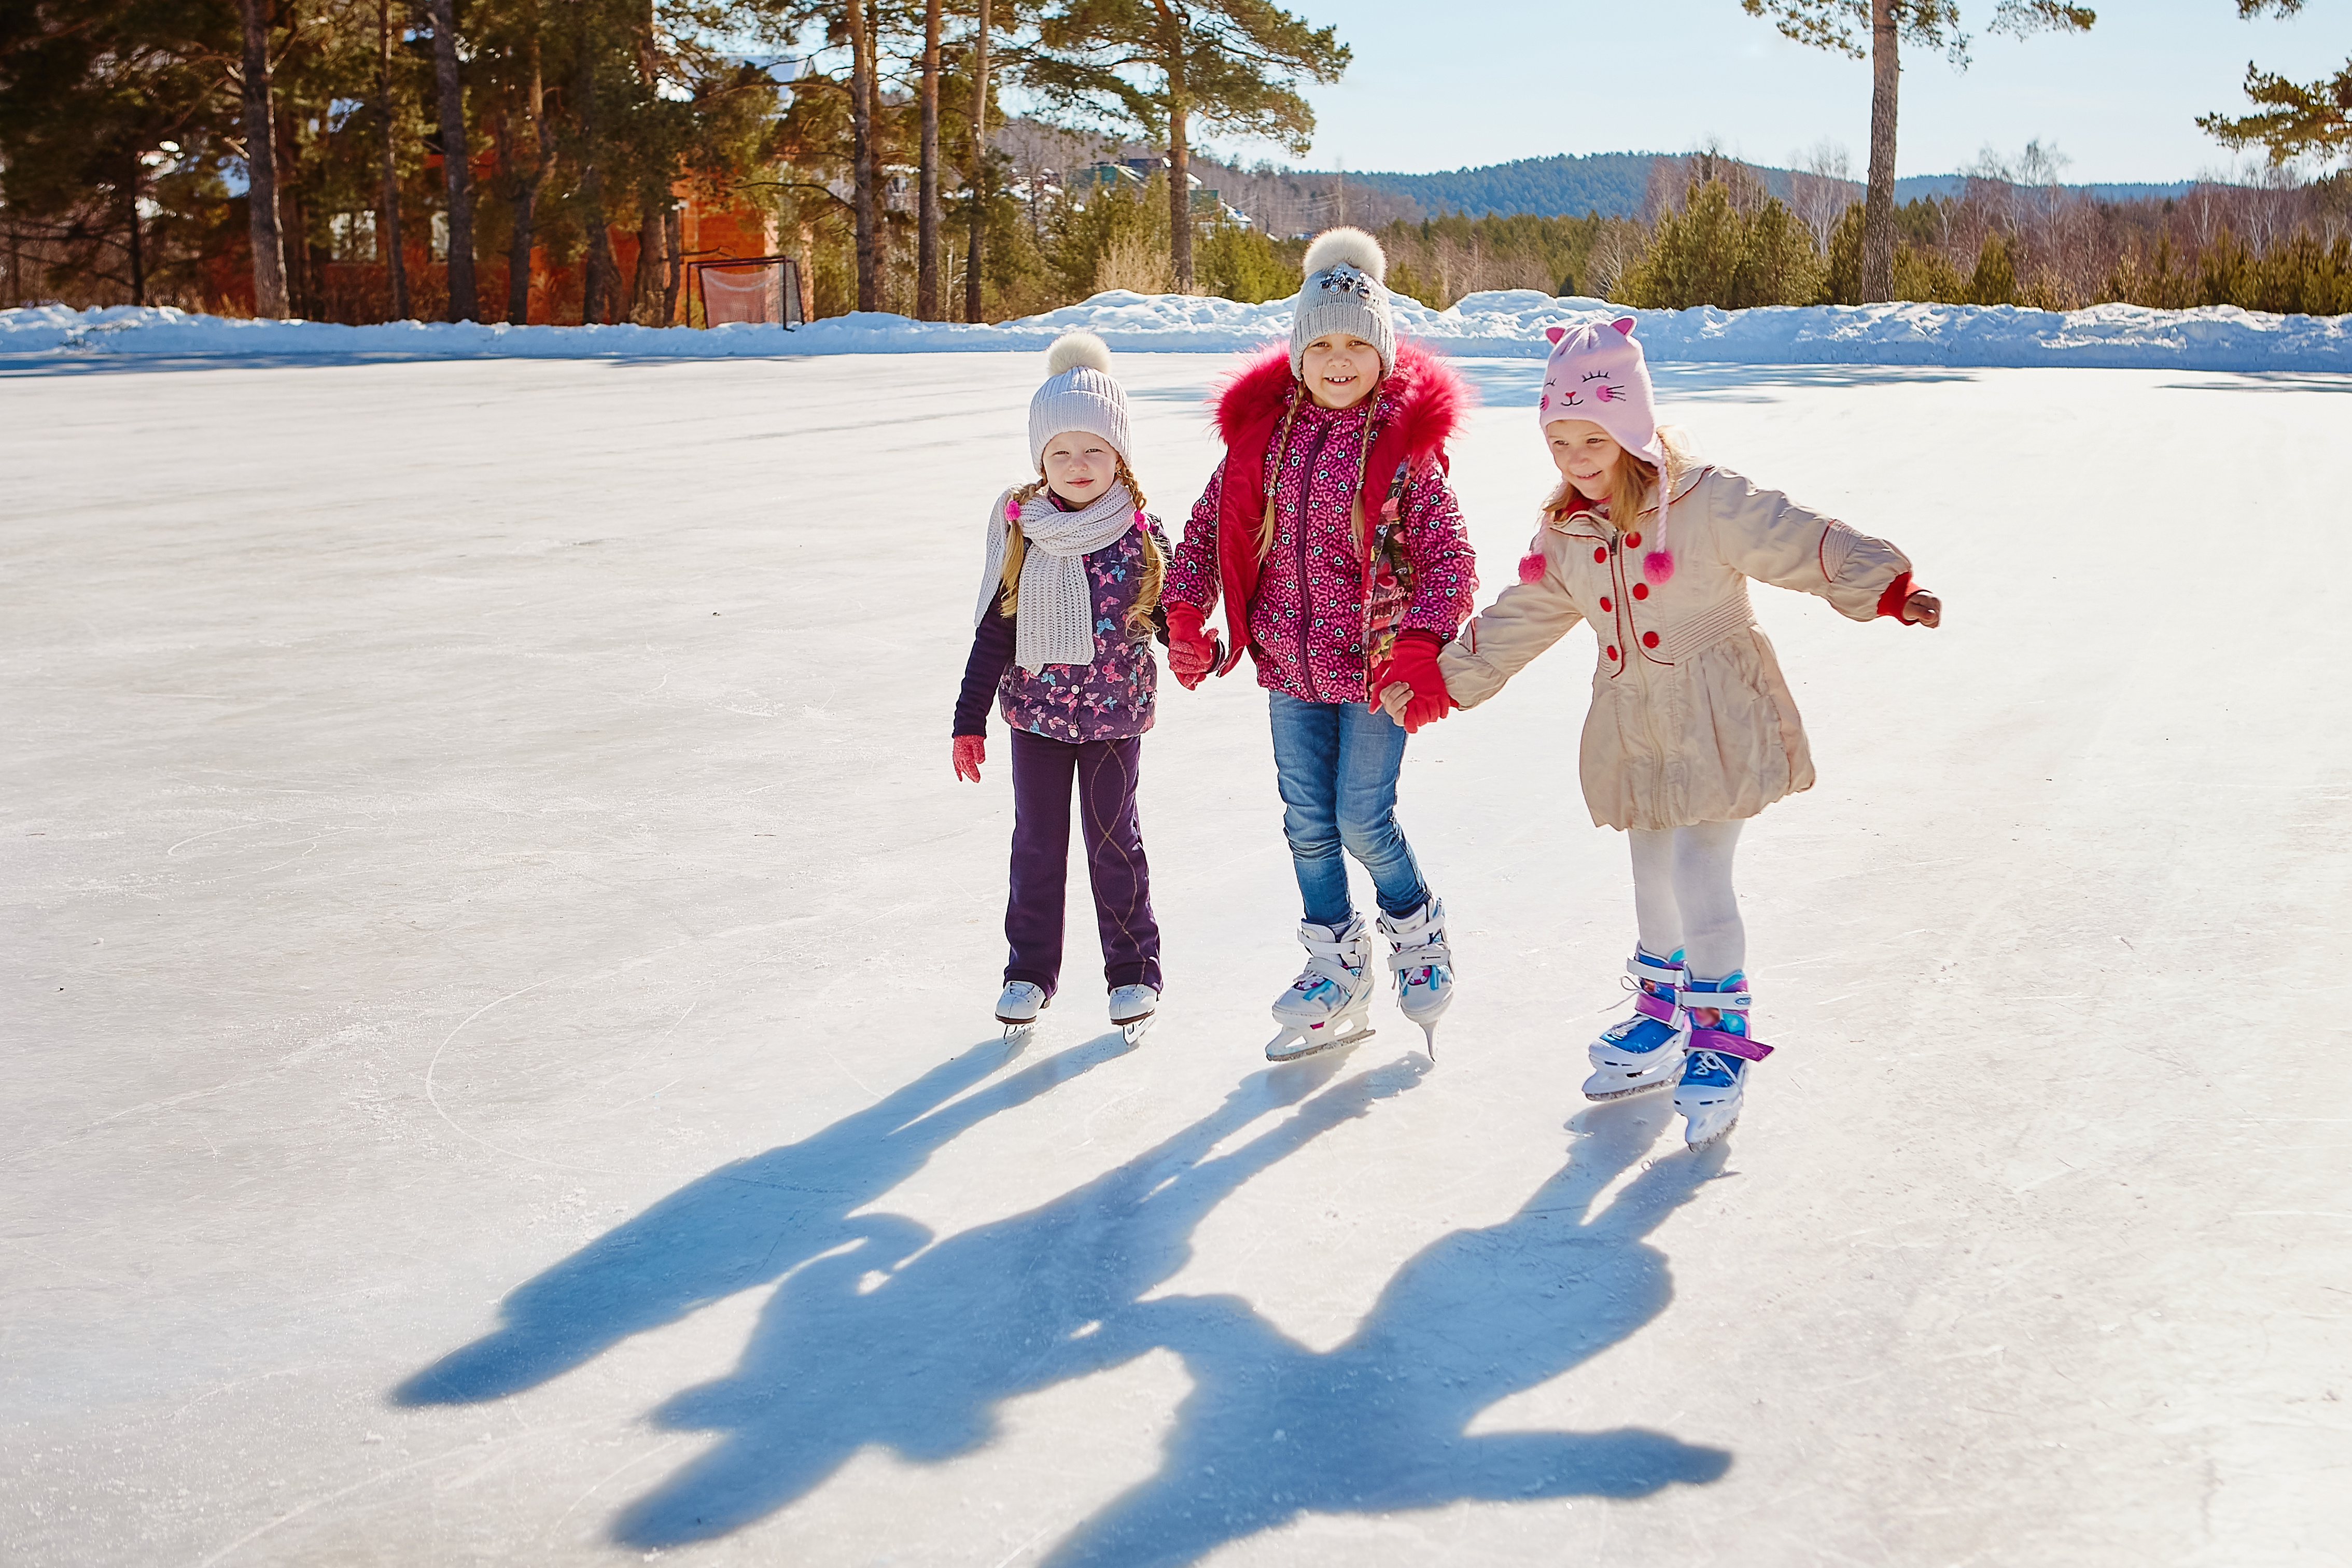 Three little girl friends learn to skate.  Outdoor recreation and holidays.